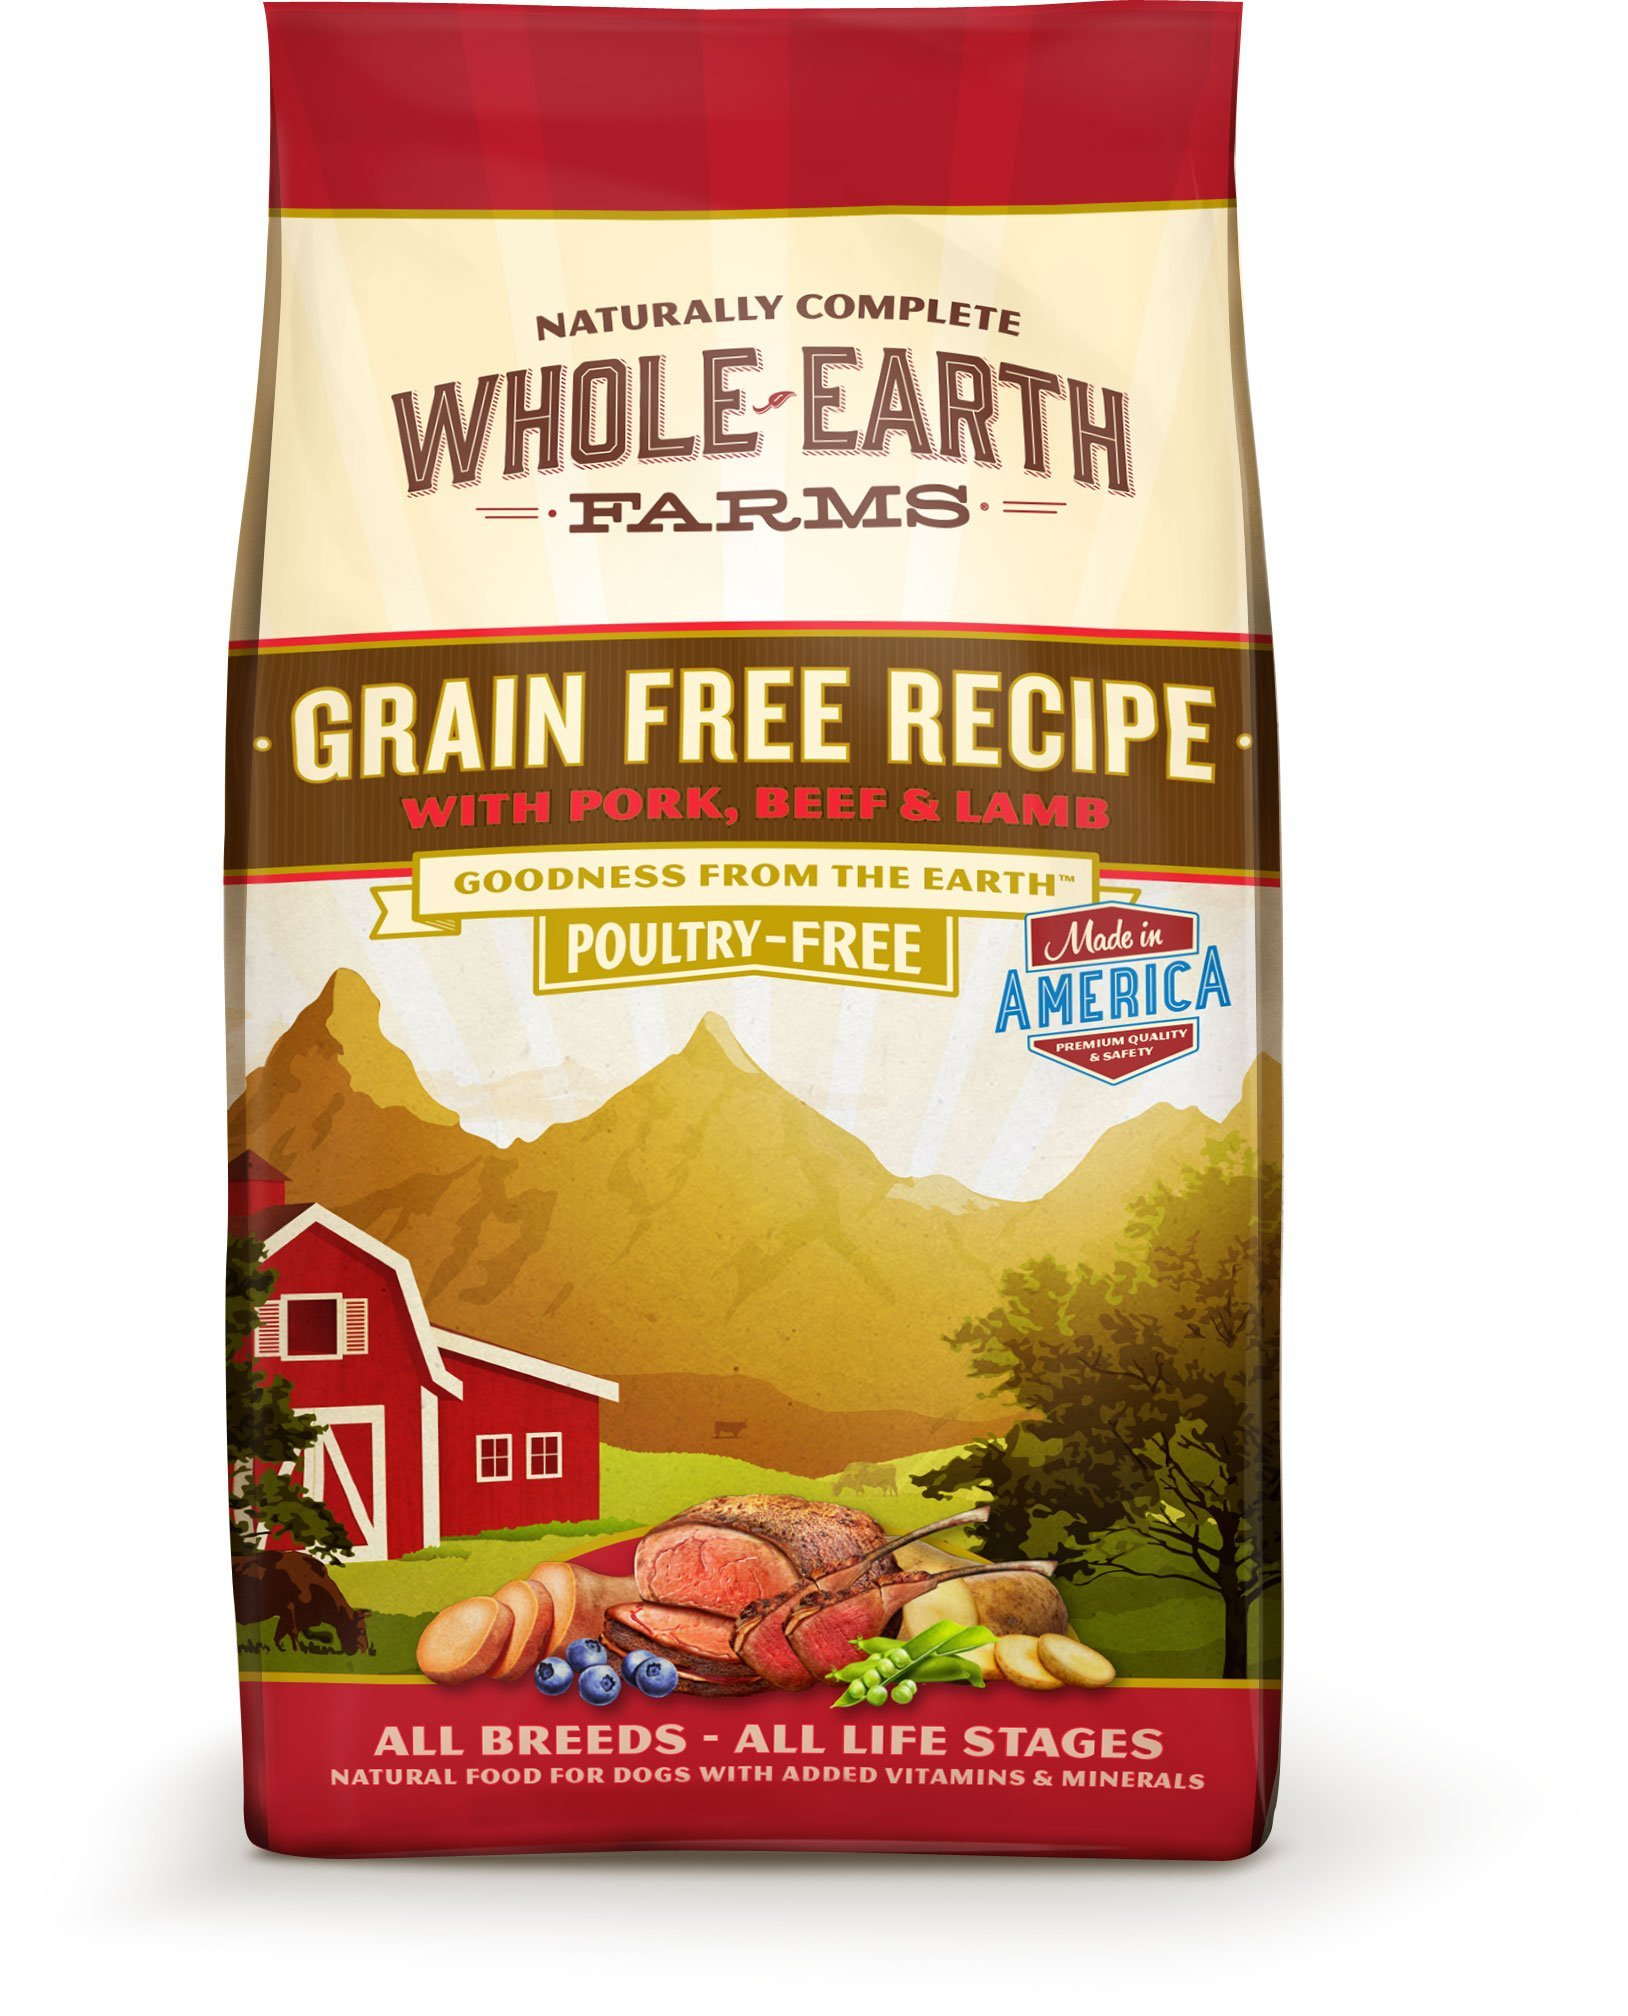 Whole Earth Farms Grain Free Recipe Dry Dog Food Pork, Beef & Lamb 12-Pound